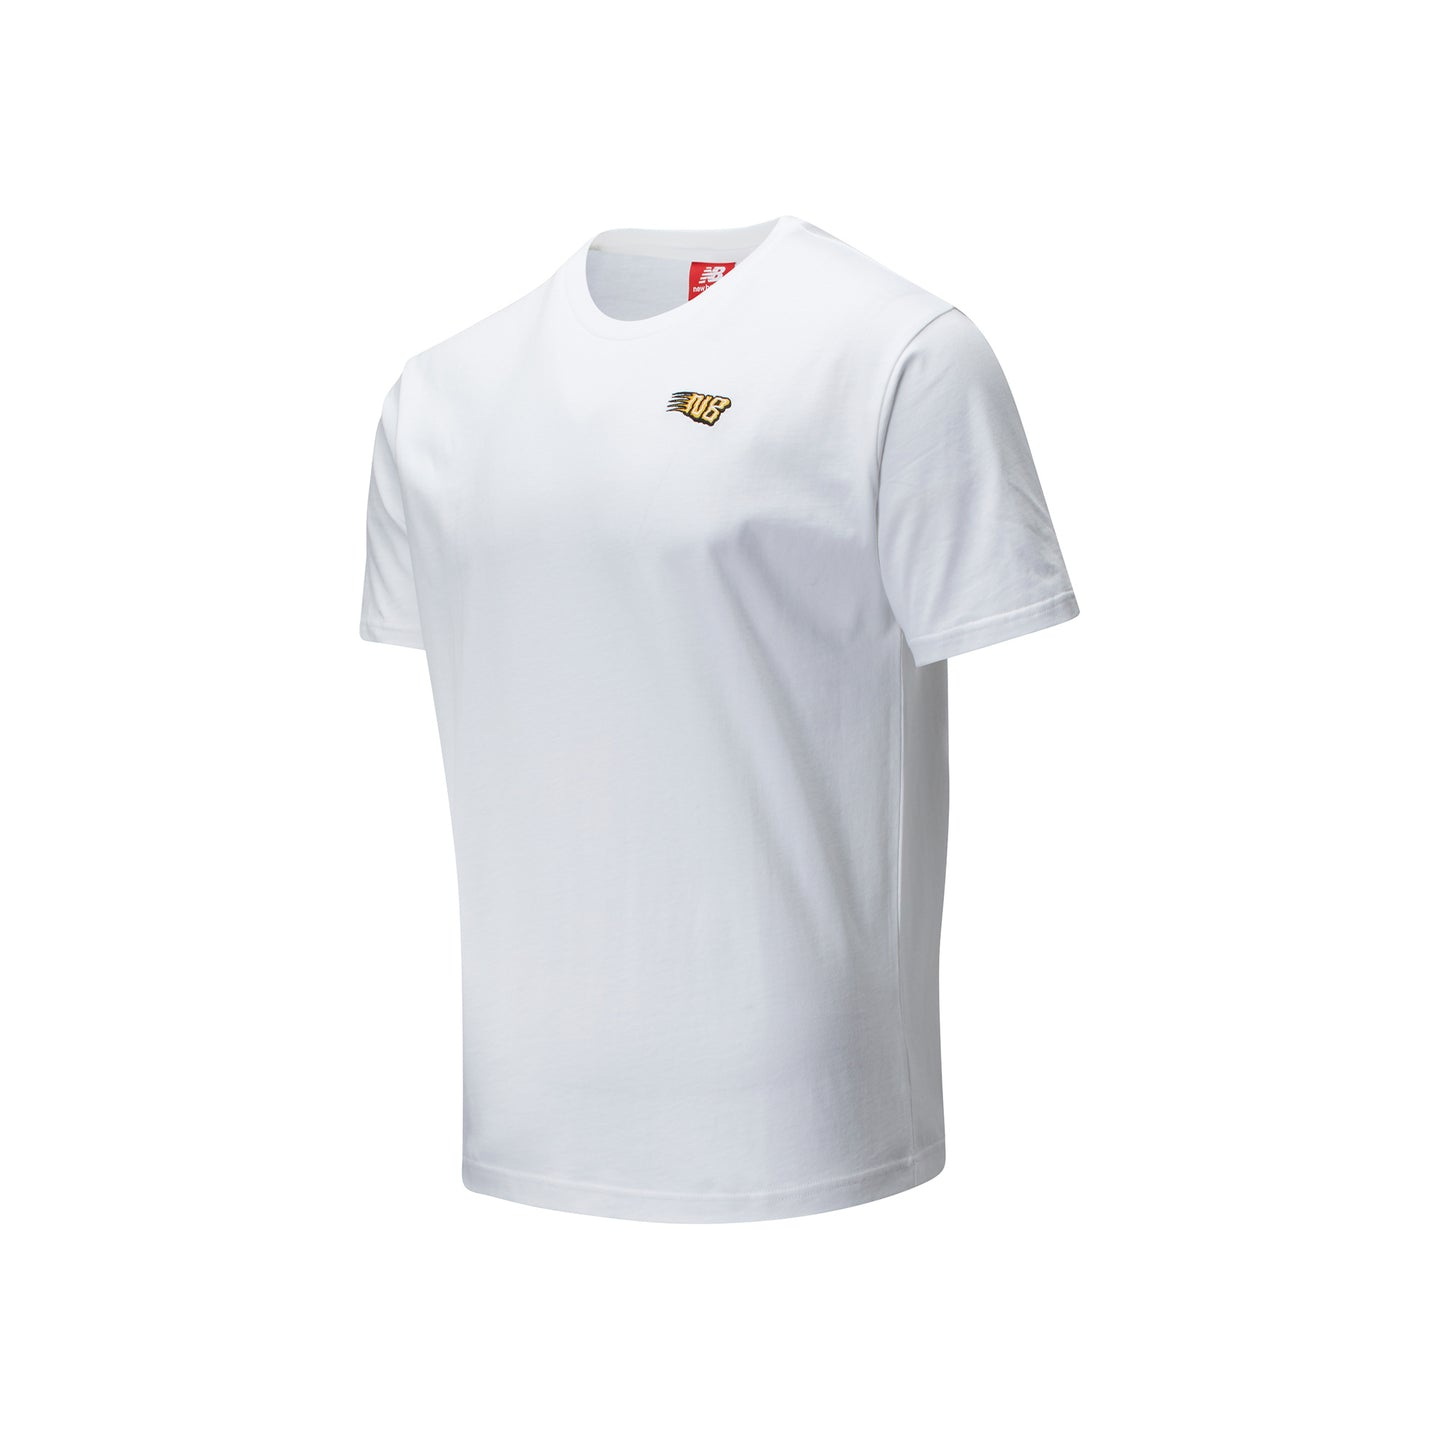 Áo thun Nam New Balance Athletics Tropic T